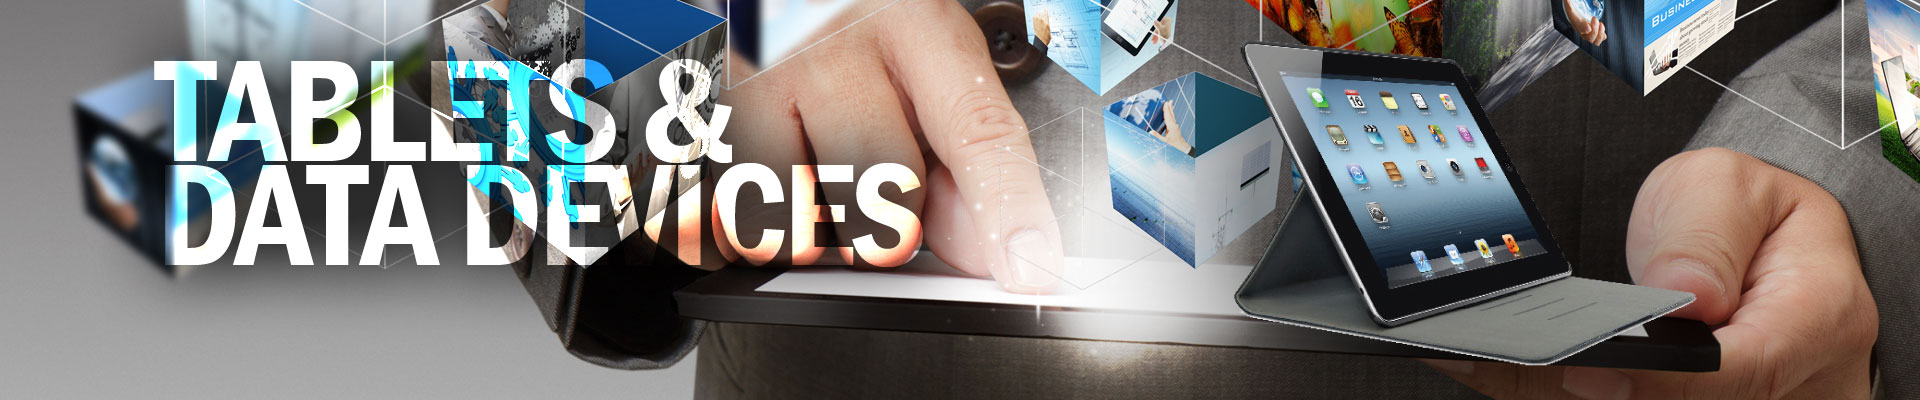 Tablets & Data Devices Banner Image